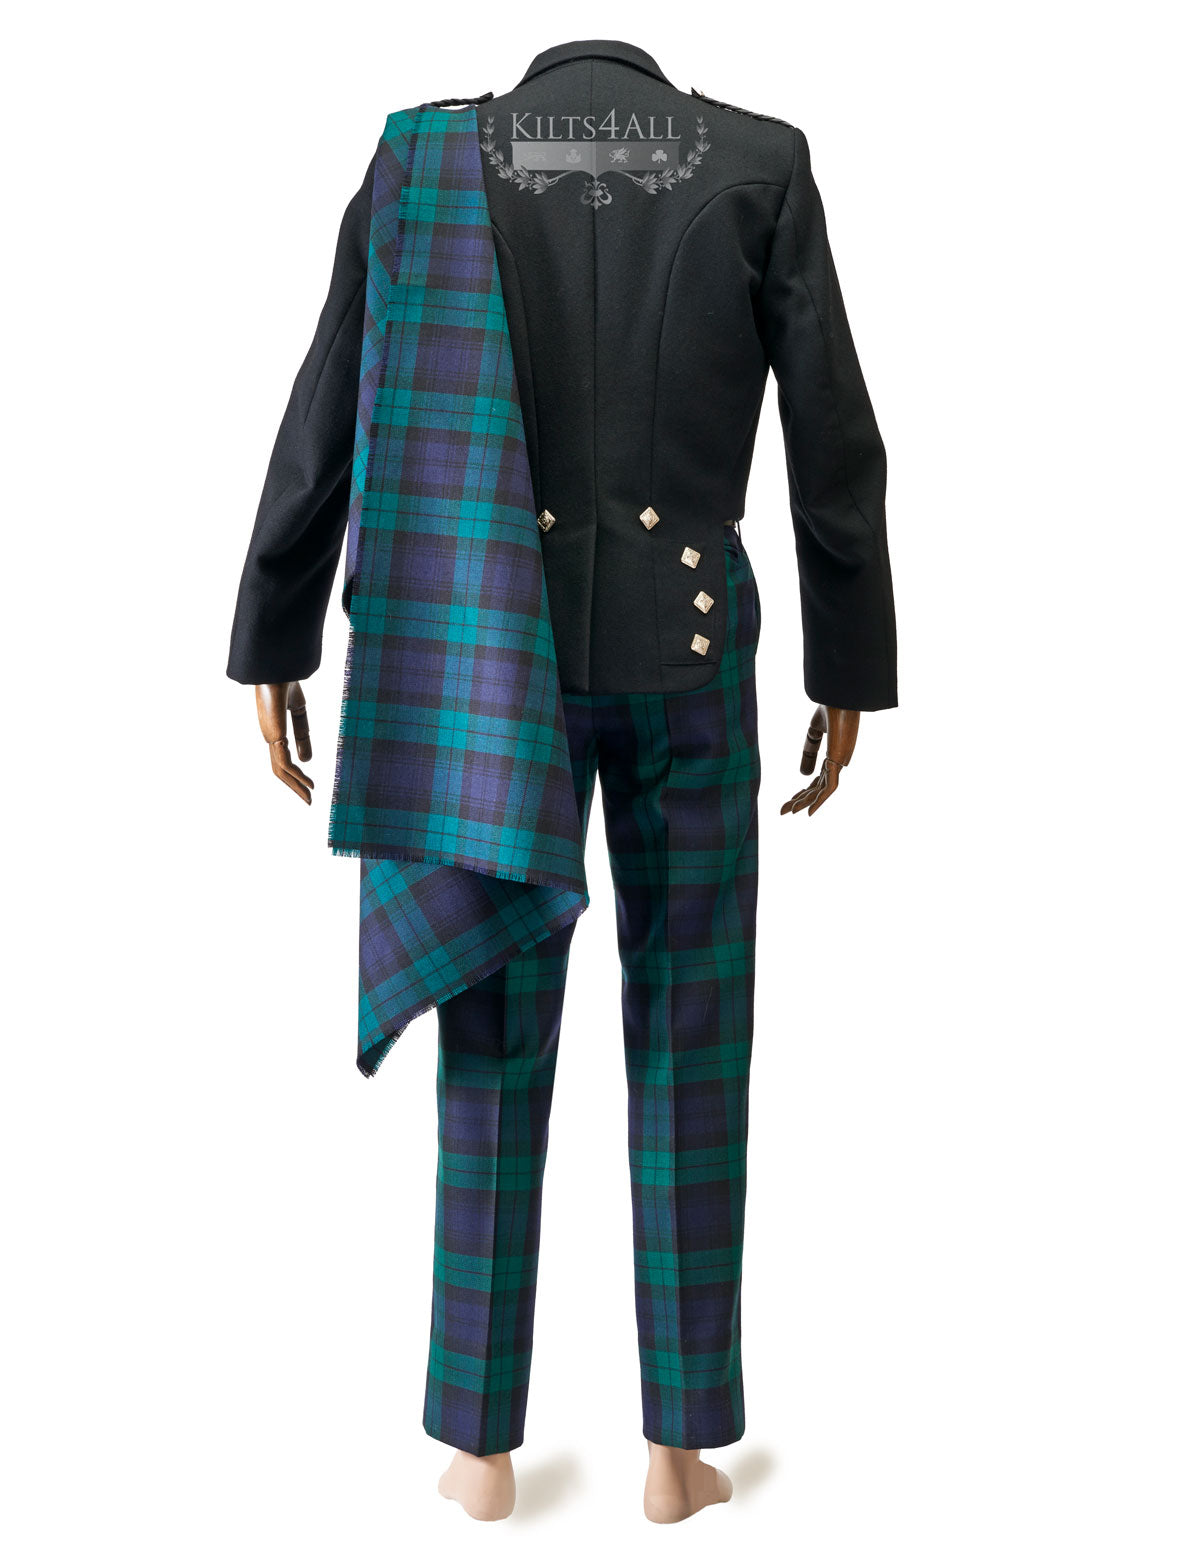 Mens Scottish Tartan Trews Outfit to Hire - Prince Charlie Jacket & 3 Button Waistcoat